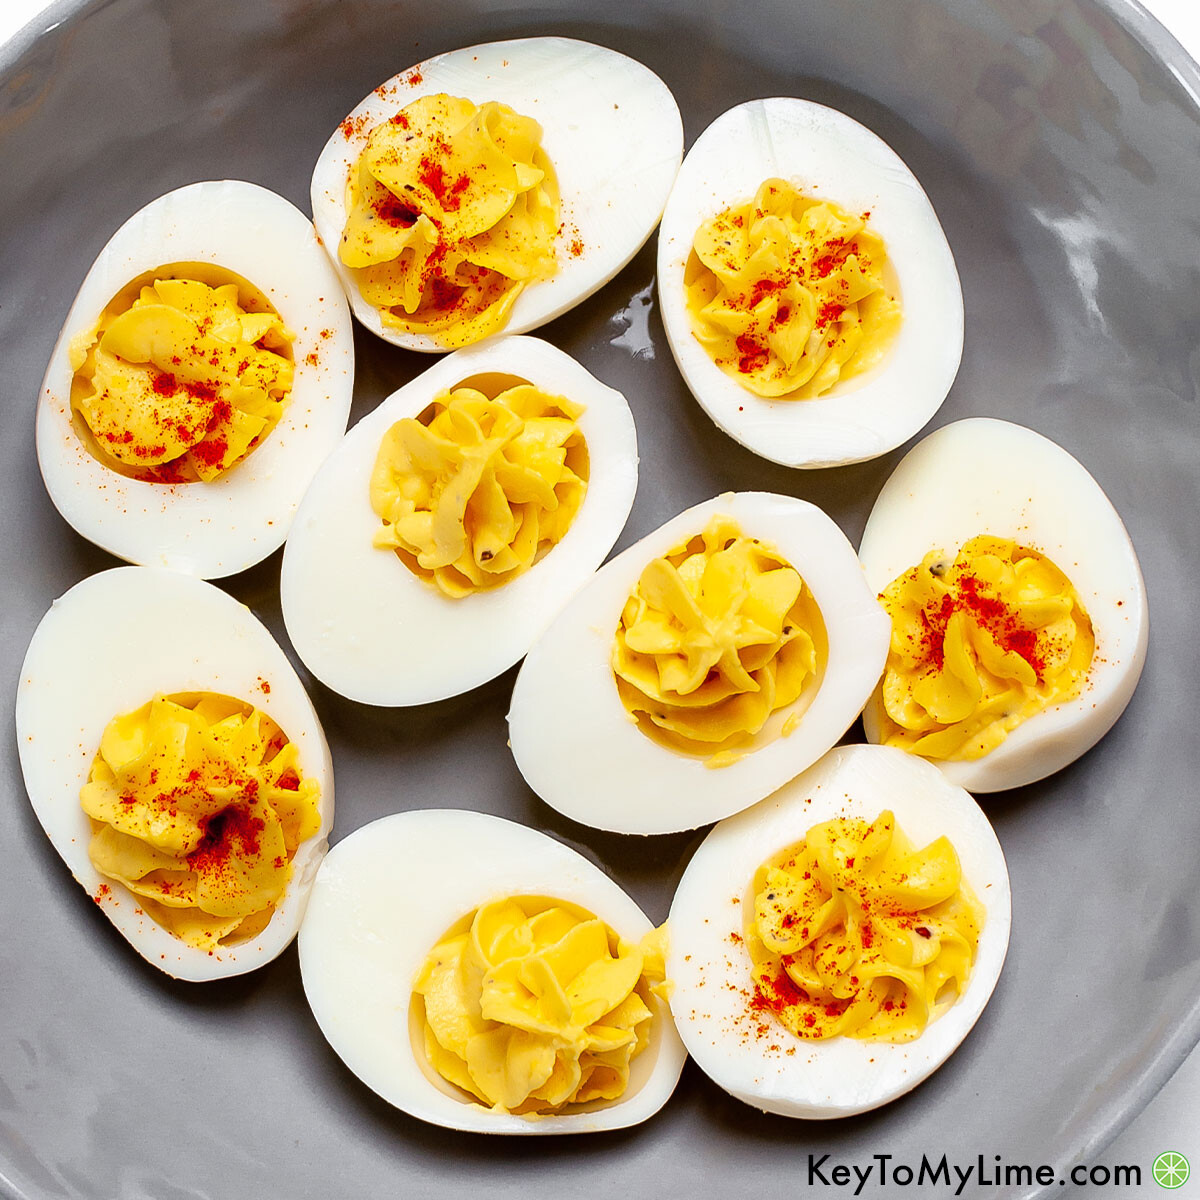 Instant Pot deviled eggs sprinkled with paprika.